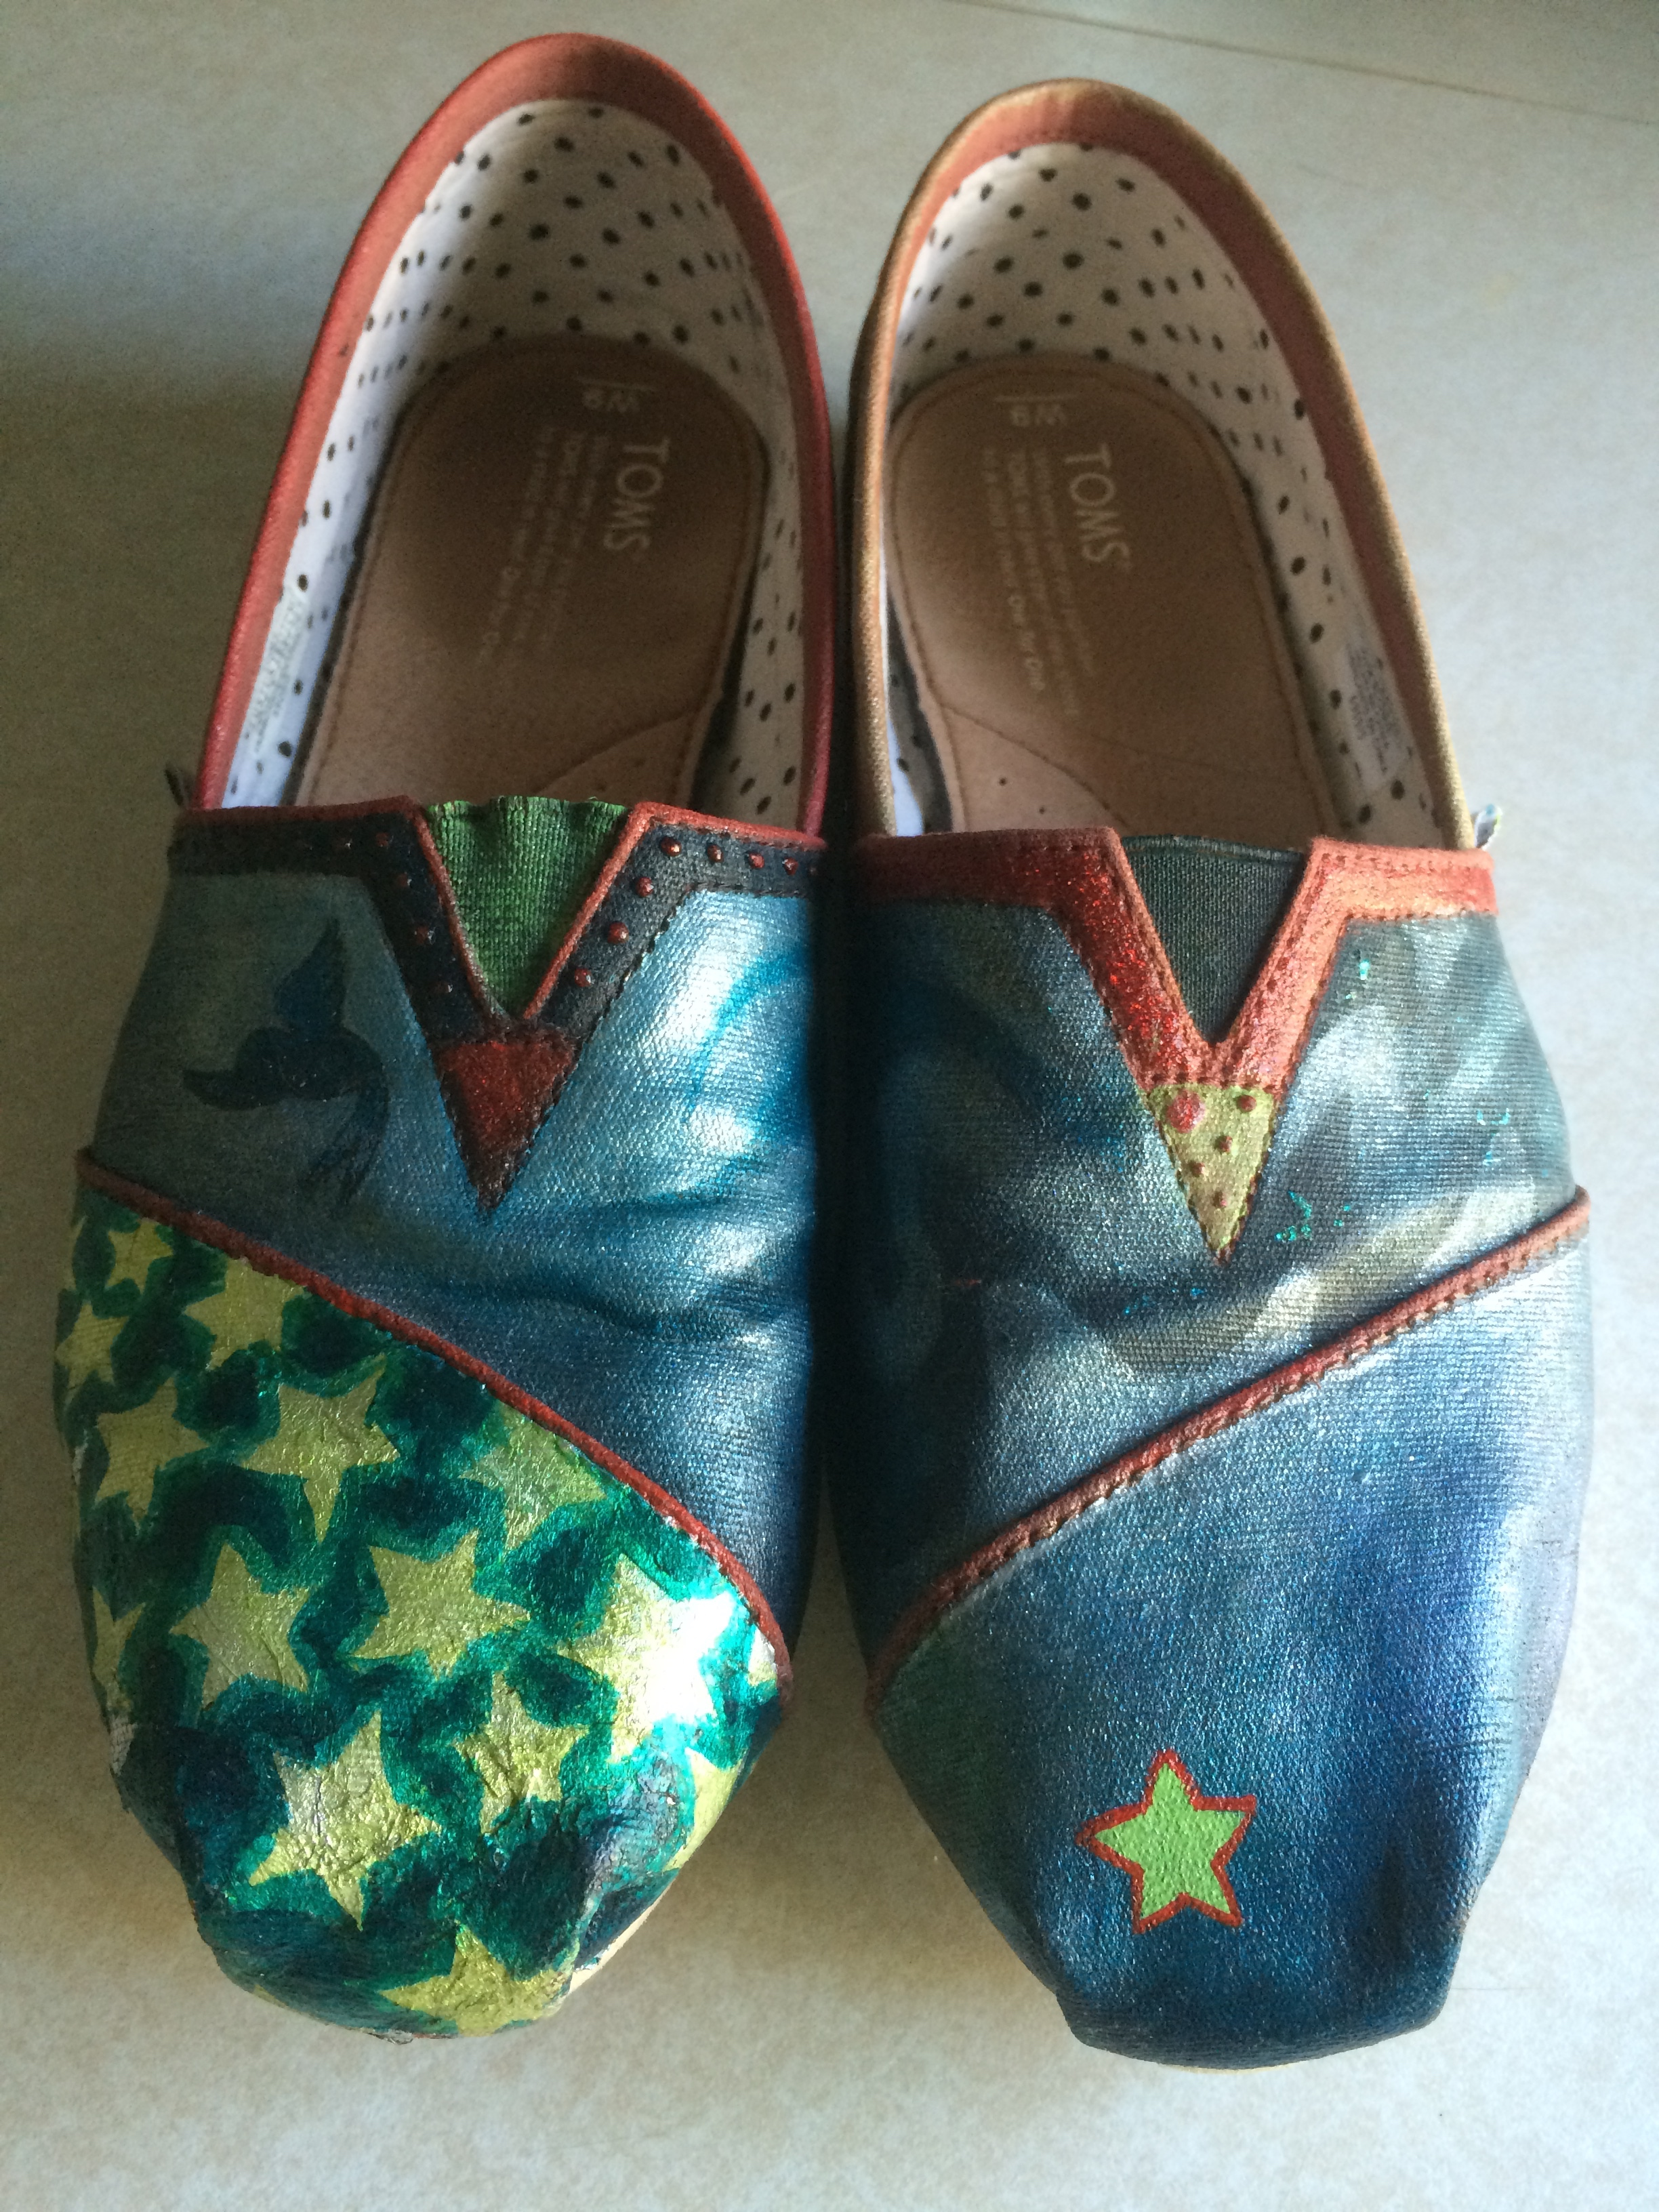 I added a wave design that continues across both shoes. And a single star to tie to the star cluster on the other toe.